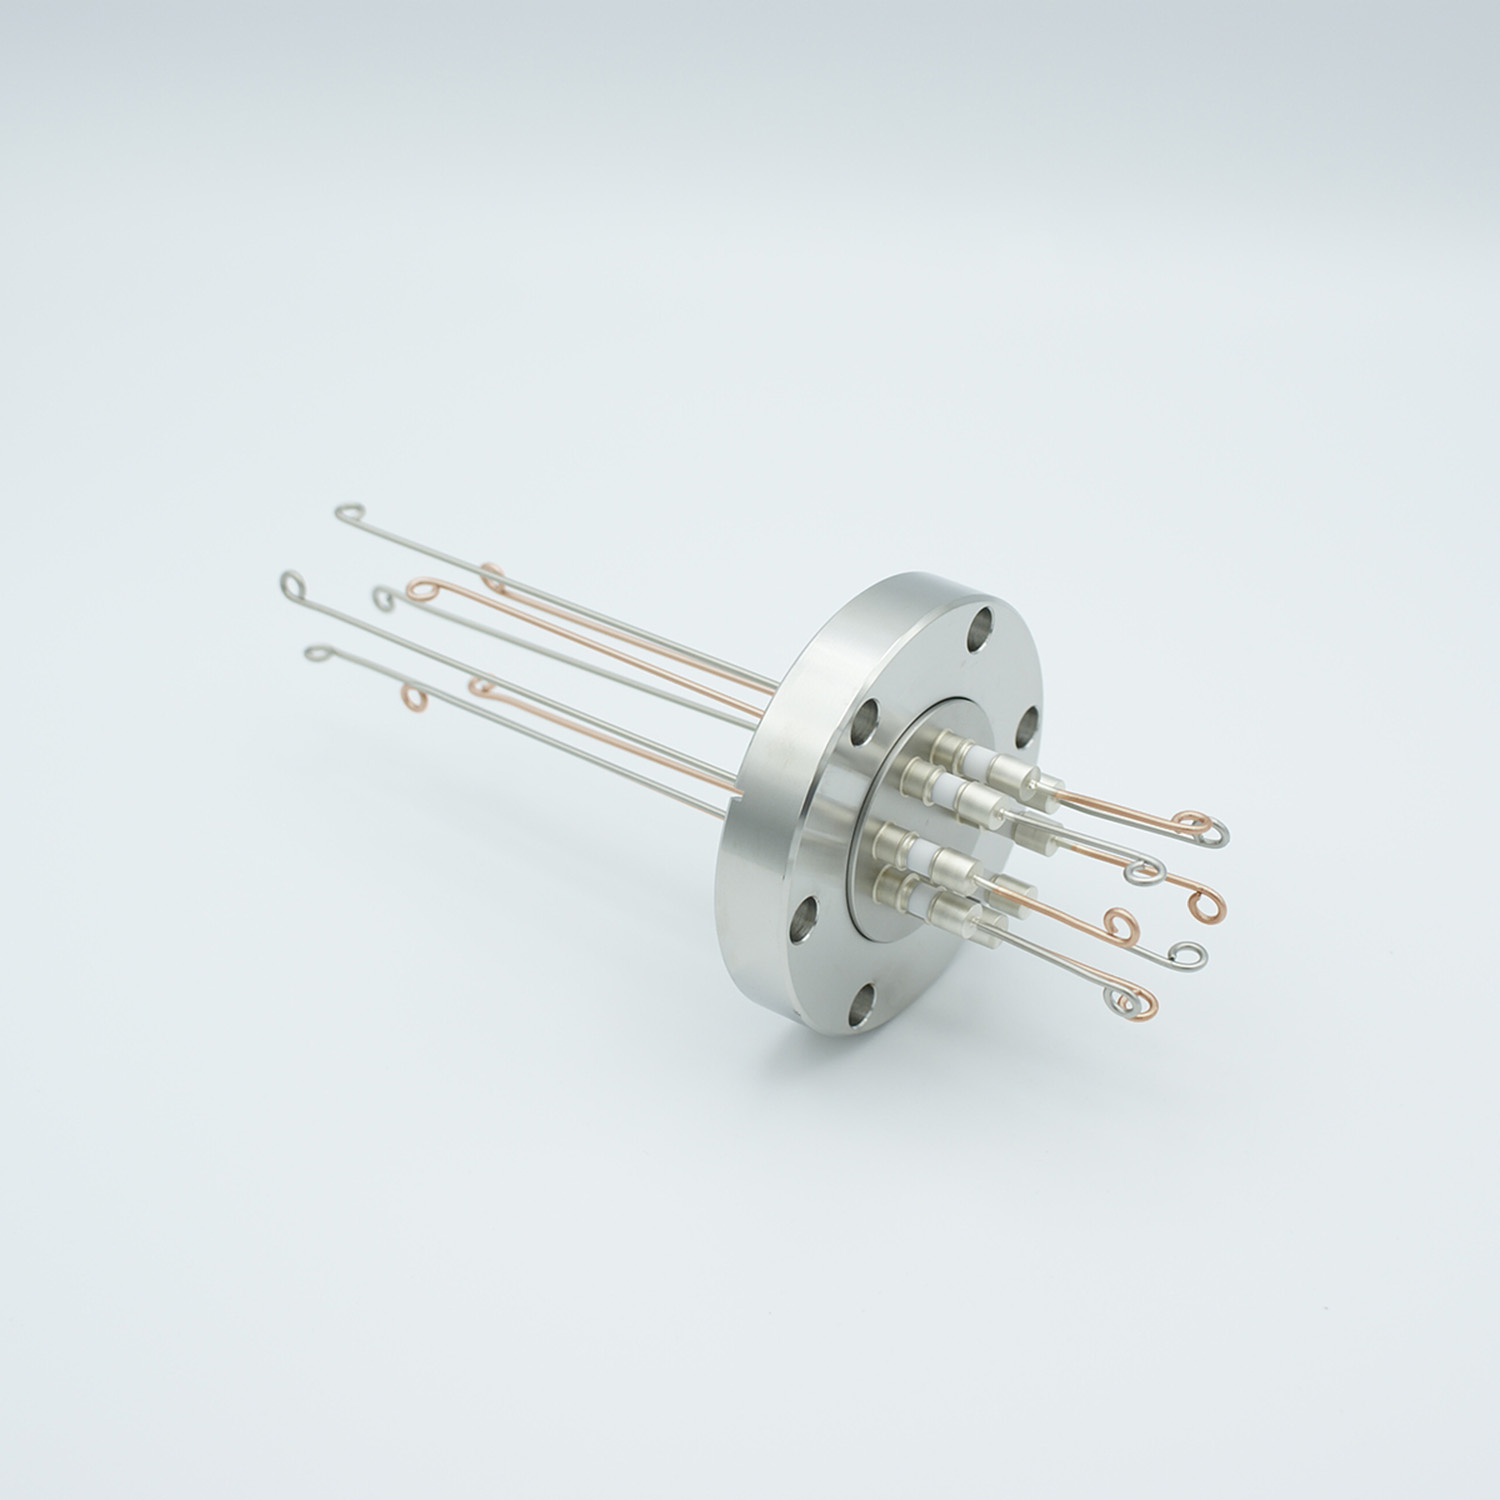 4 pair Thermocouple type-T feedthrough with both side connectors included, DN40CF flange